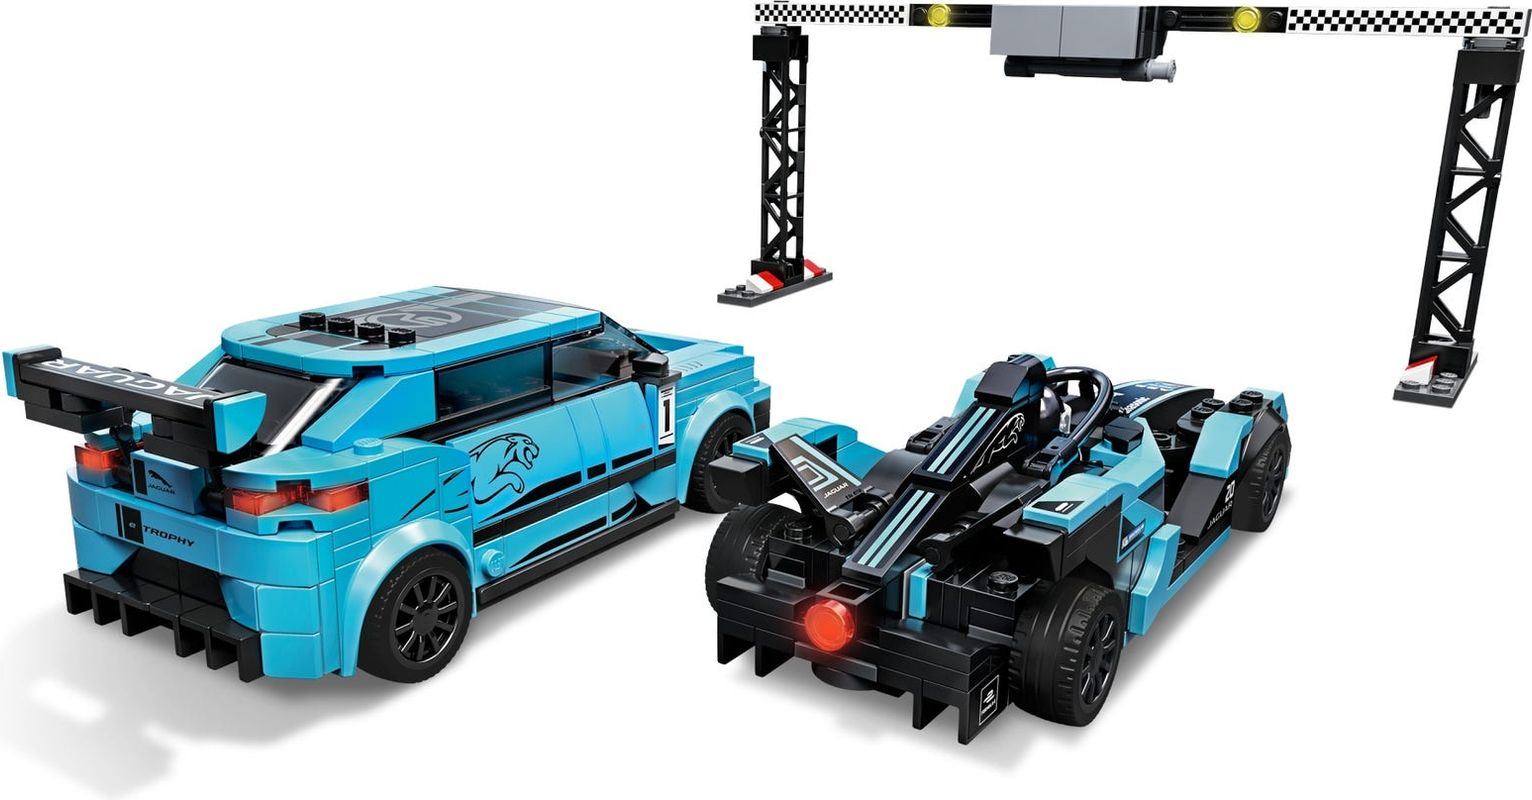 Formula E Panasonic Jaguar Racing GEN2 car & Jaguar I-PACE eTROPHY back side